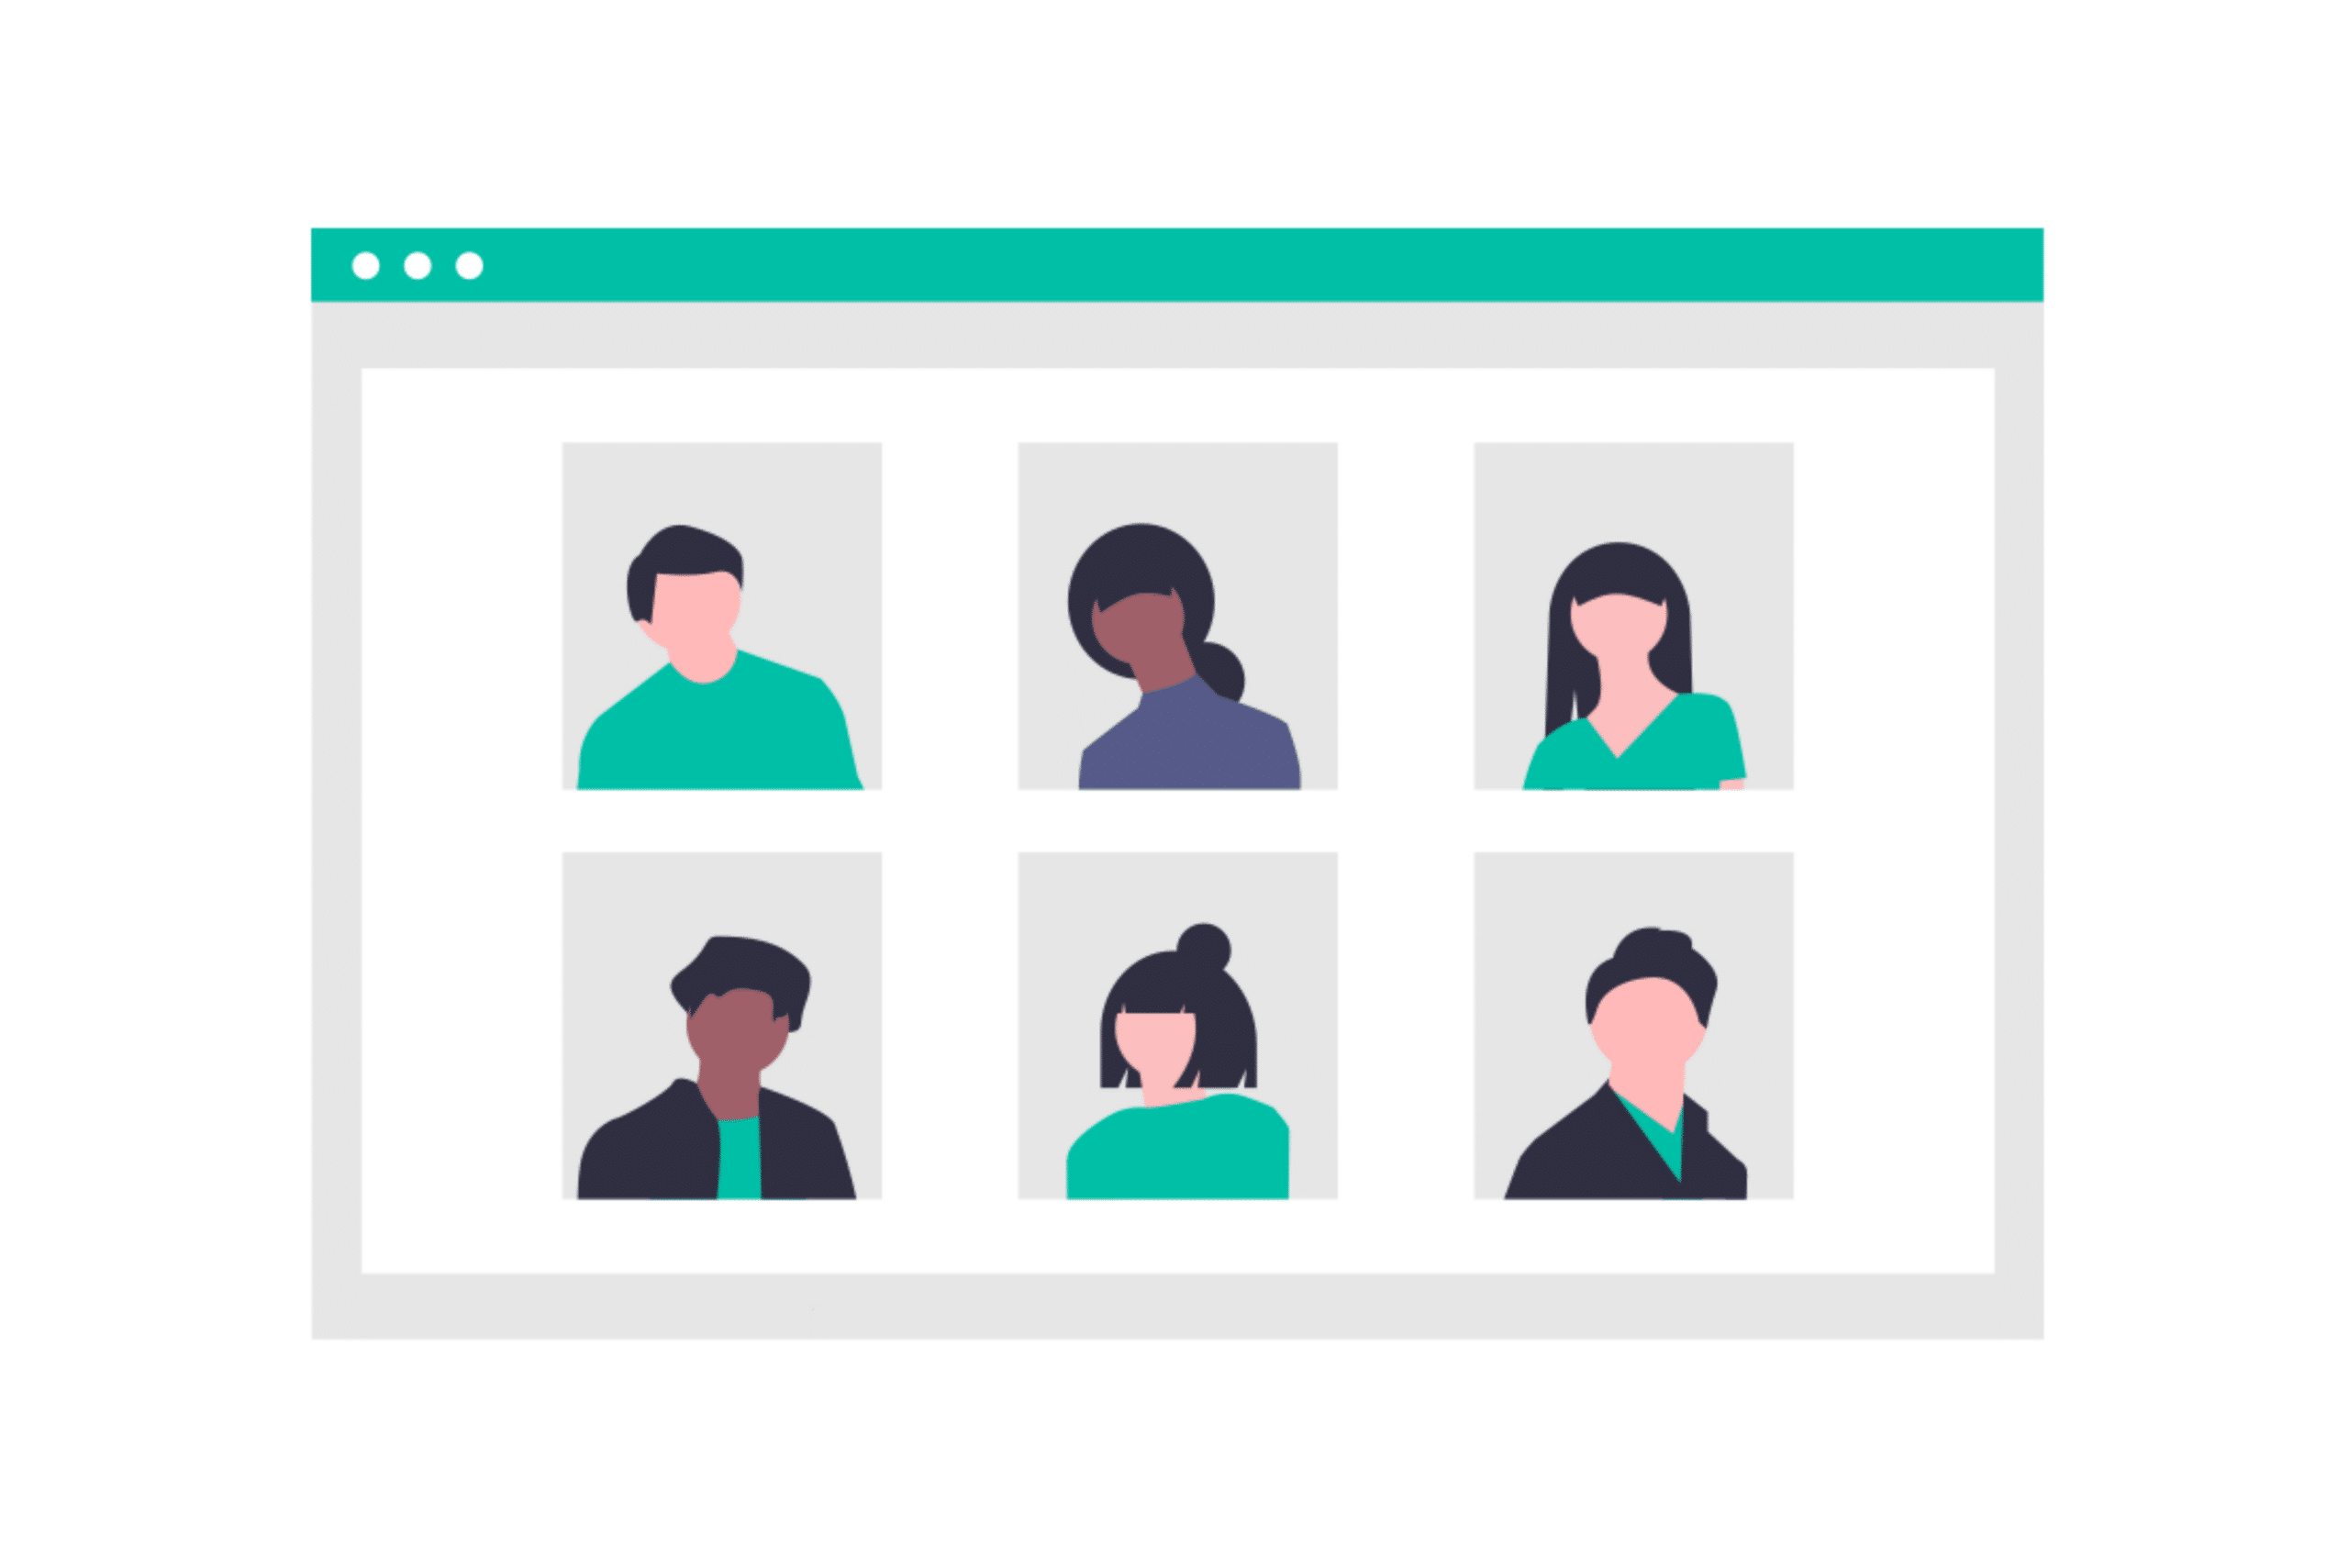 Illustration about different people and personalities